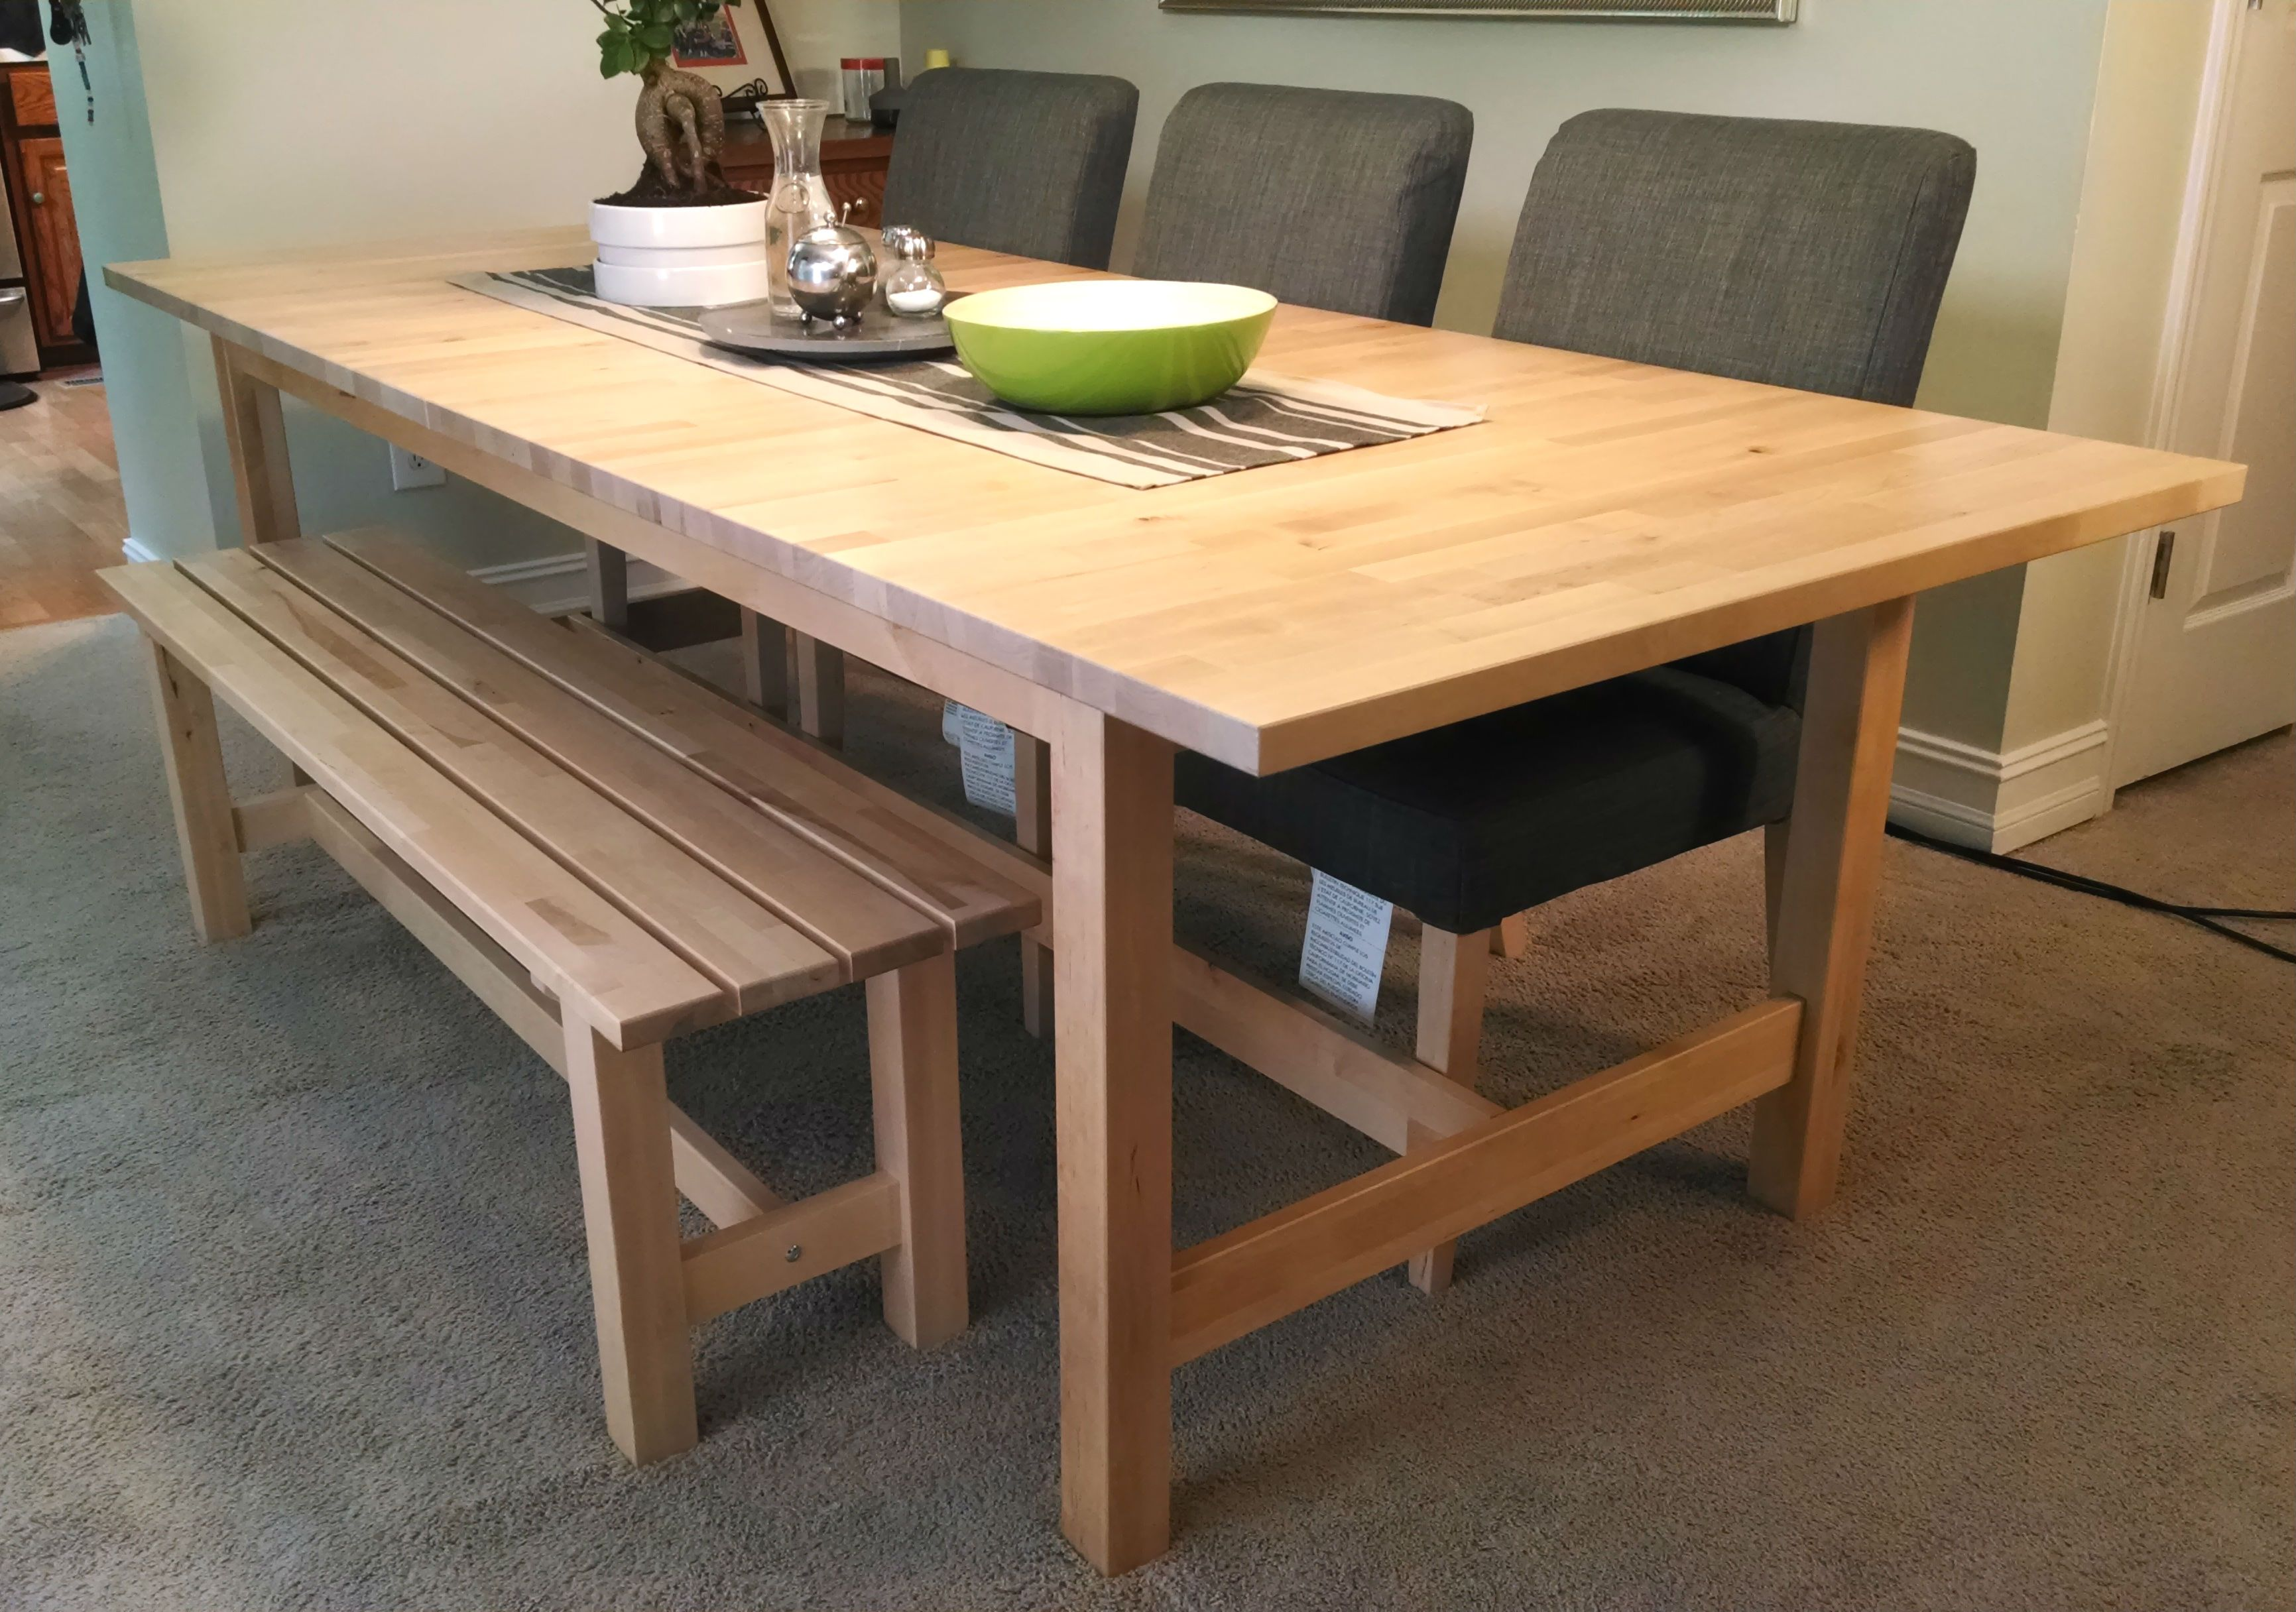 If space is tight around your dining table a bench might be a good fit The NORDEN bench is a